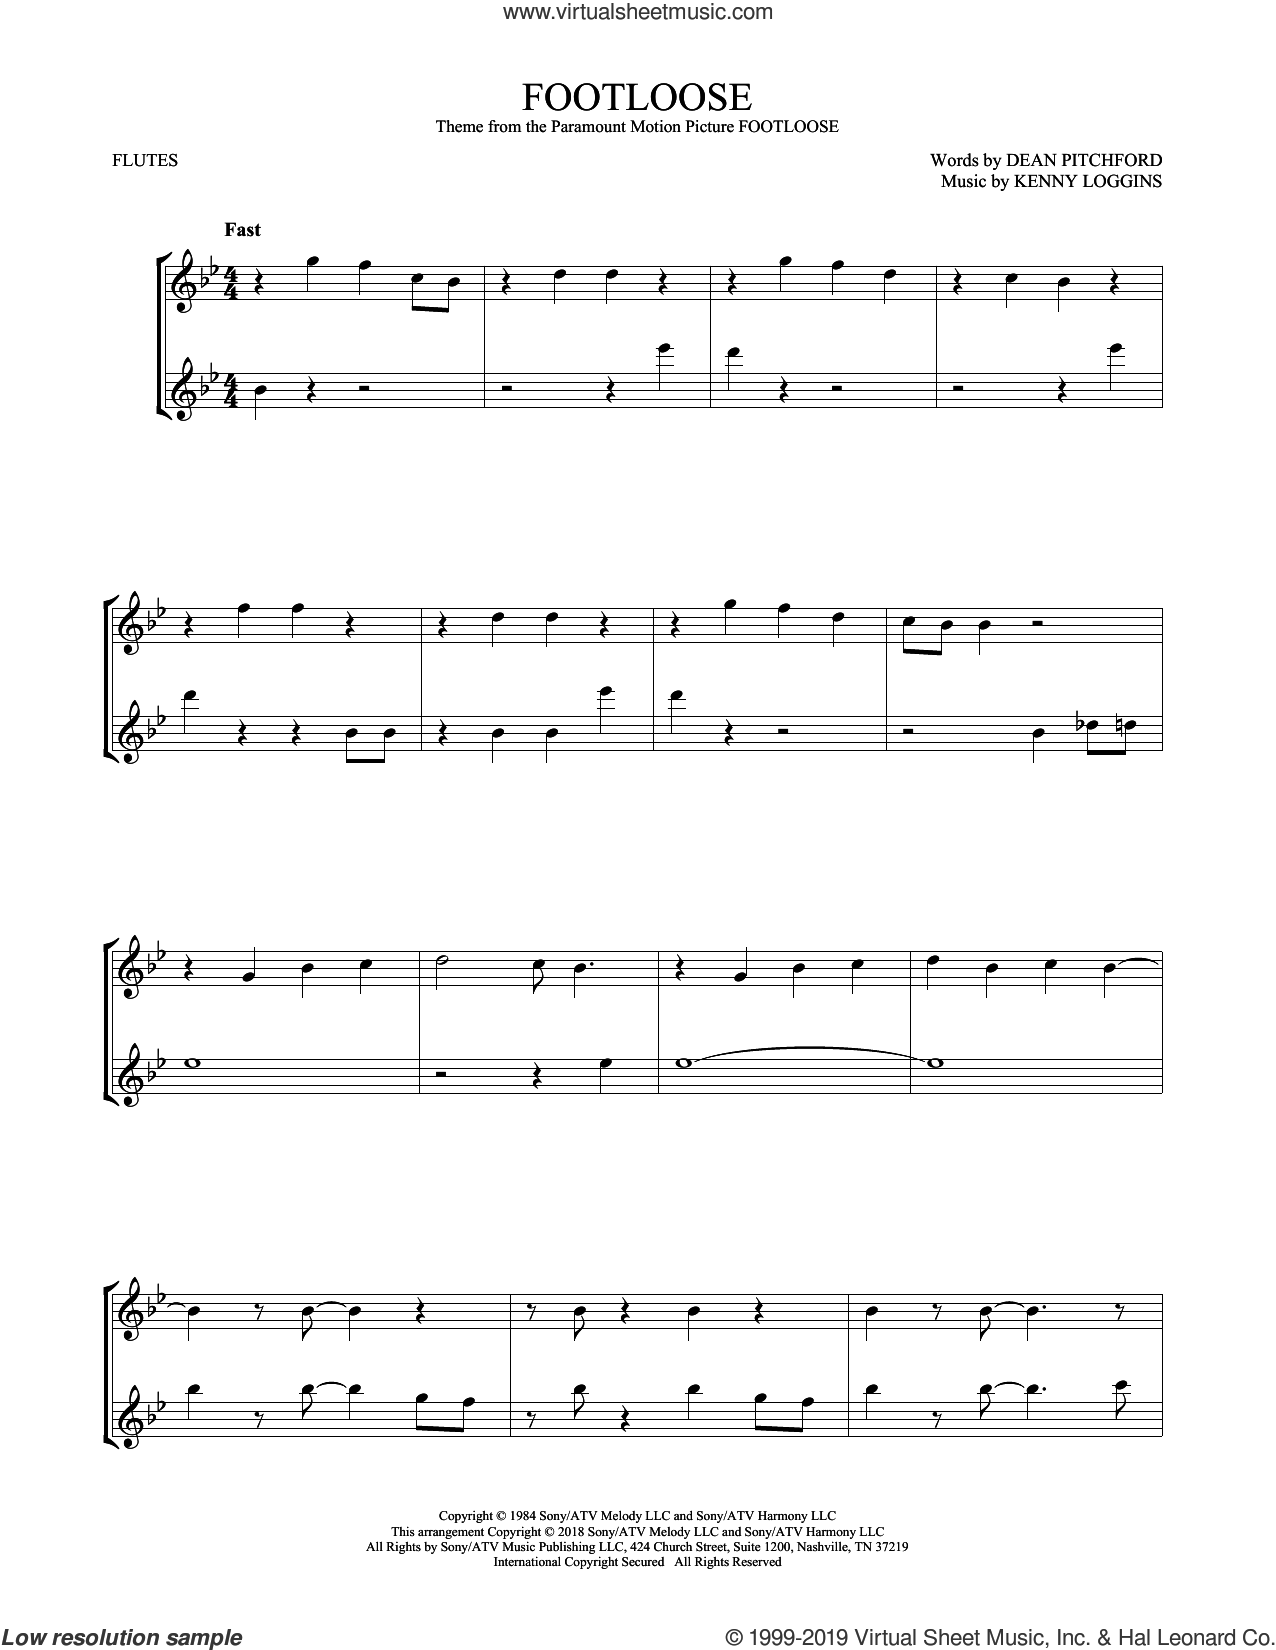 Footloose sheet music for two flutes (duets) by Kenny Loggins and Dean Pitchford, intermediate skill level